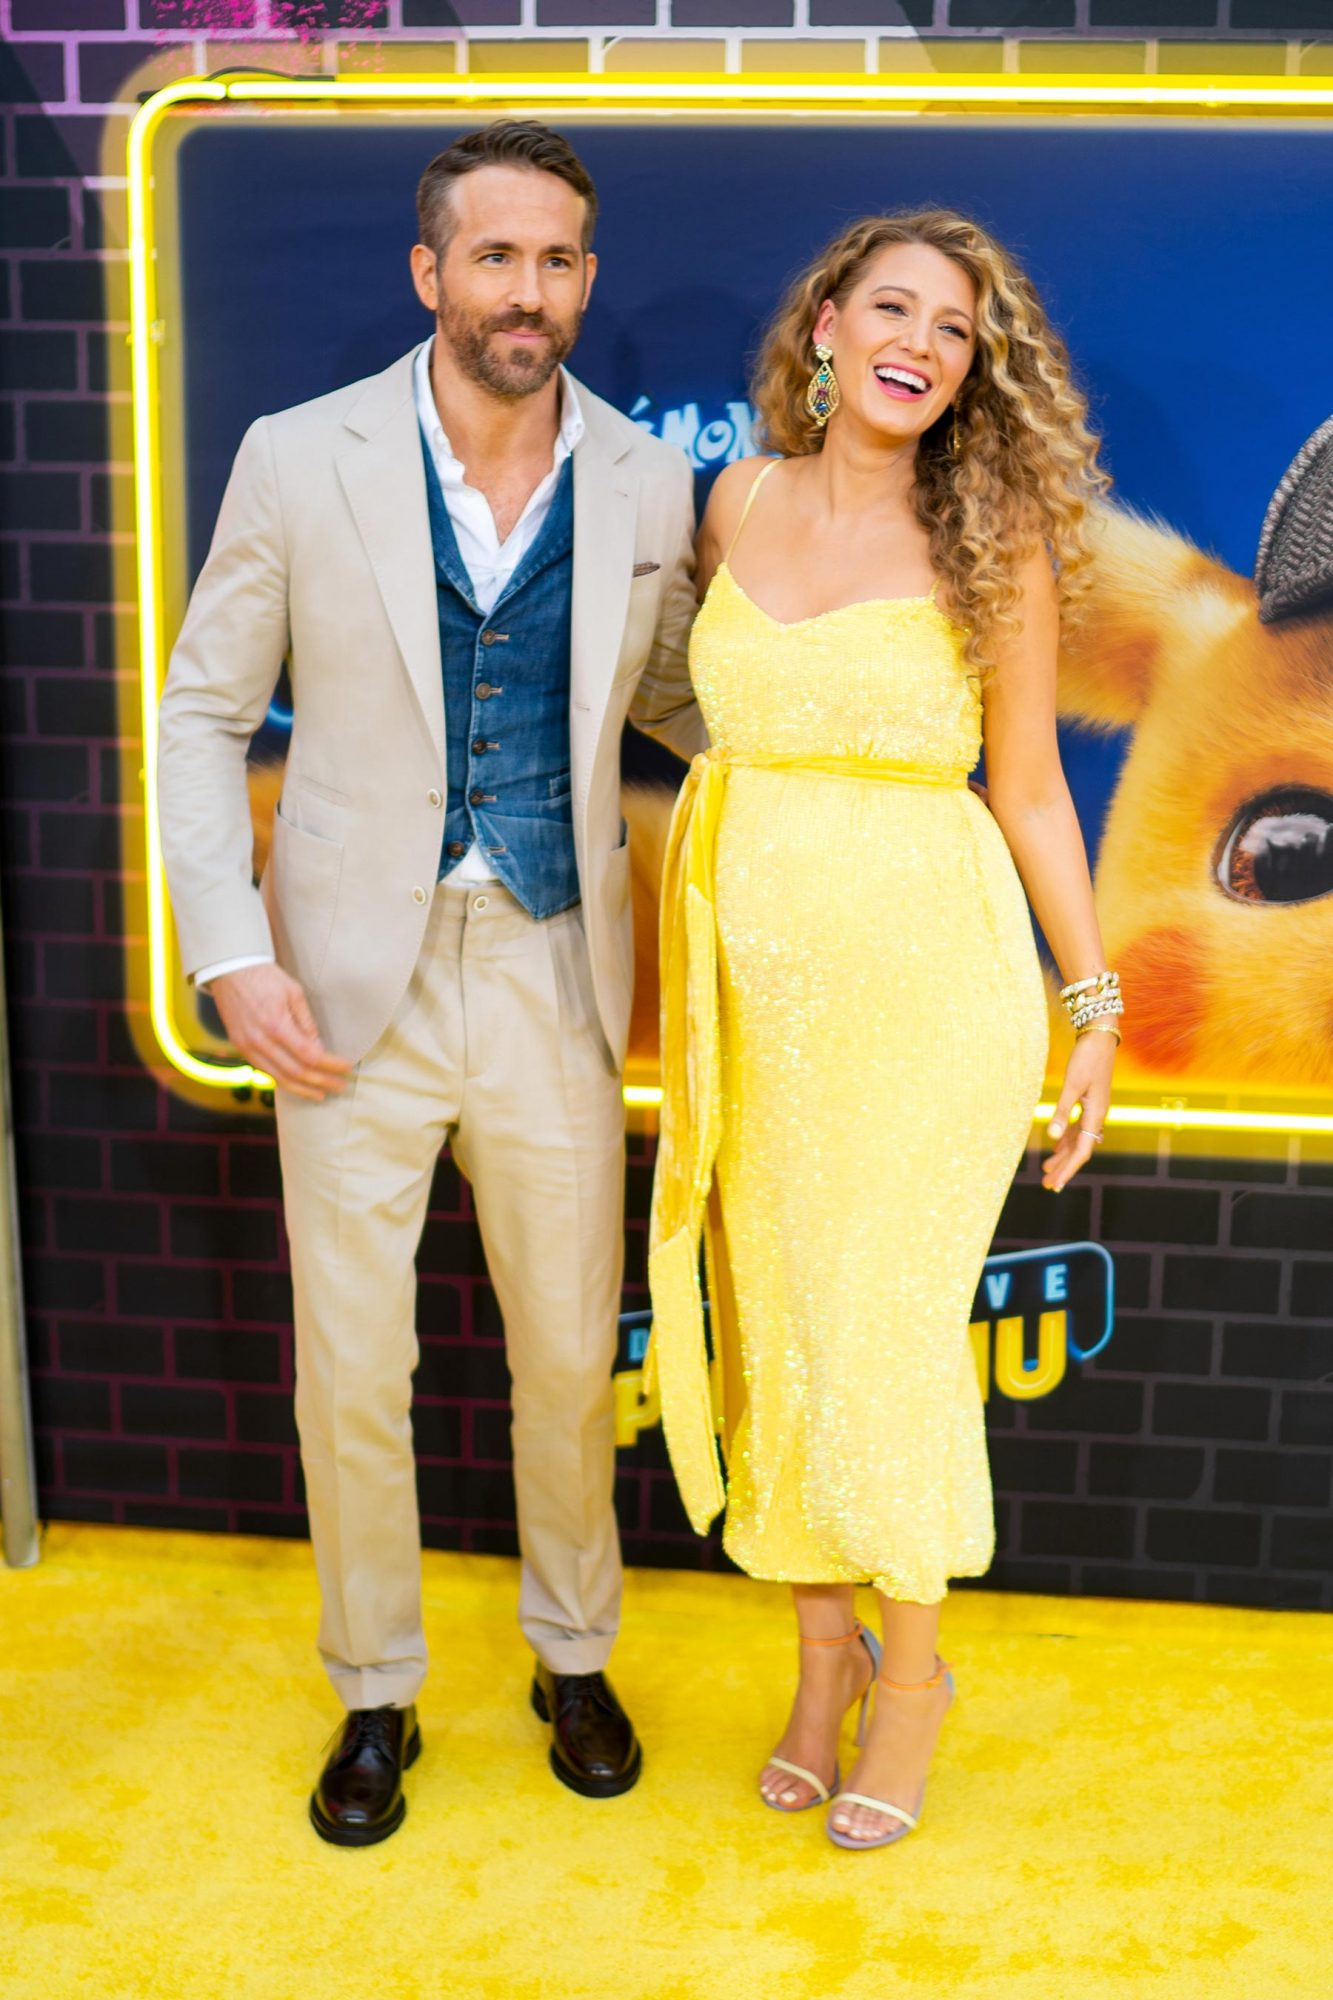 NEW YORK, NEW YORK - MAY 02: Blake Lively and Ryan Reynolds attend the 'Pokeman Detective Pikachu' U.S. Premiere at Times Square on May 02, 2019 in New York City. (Photo by Michael Stewart/FilmMagic)